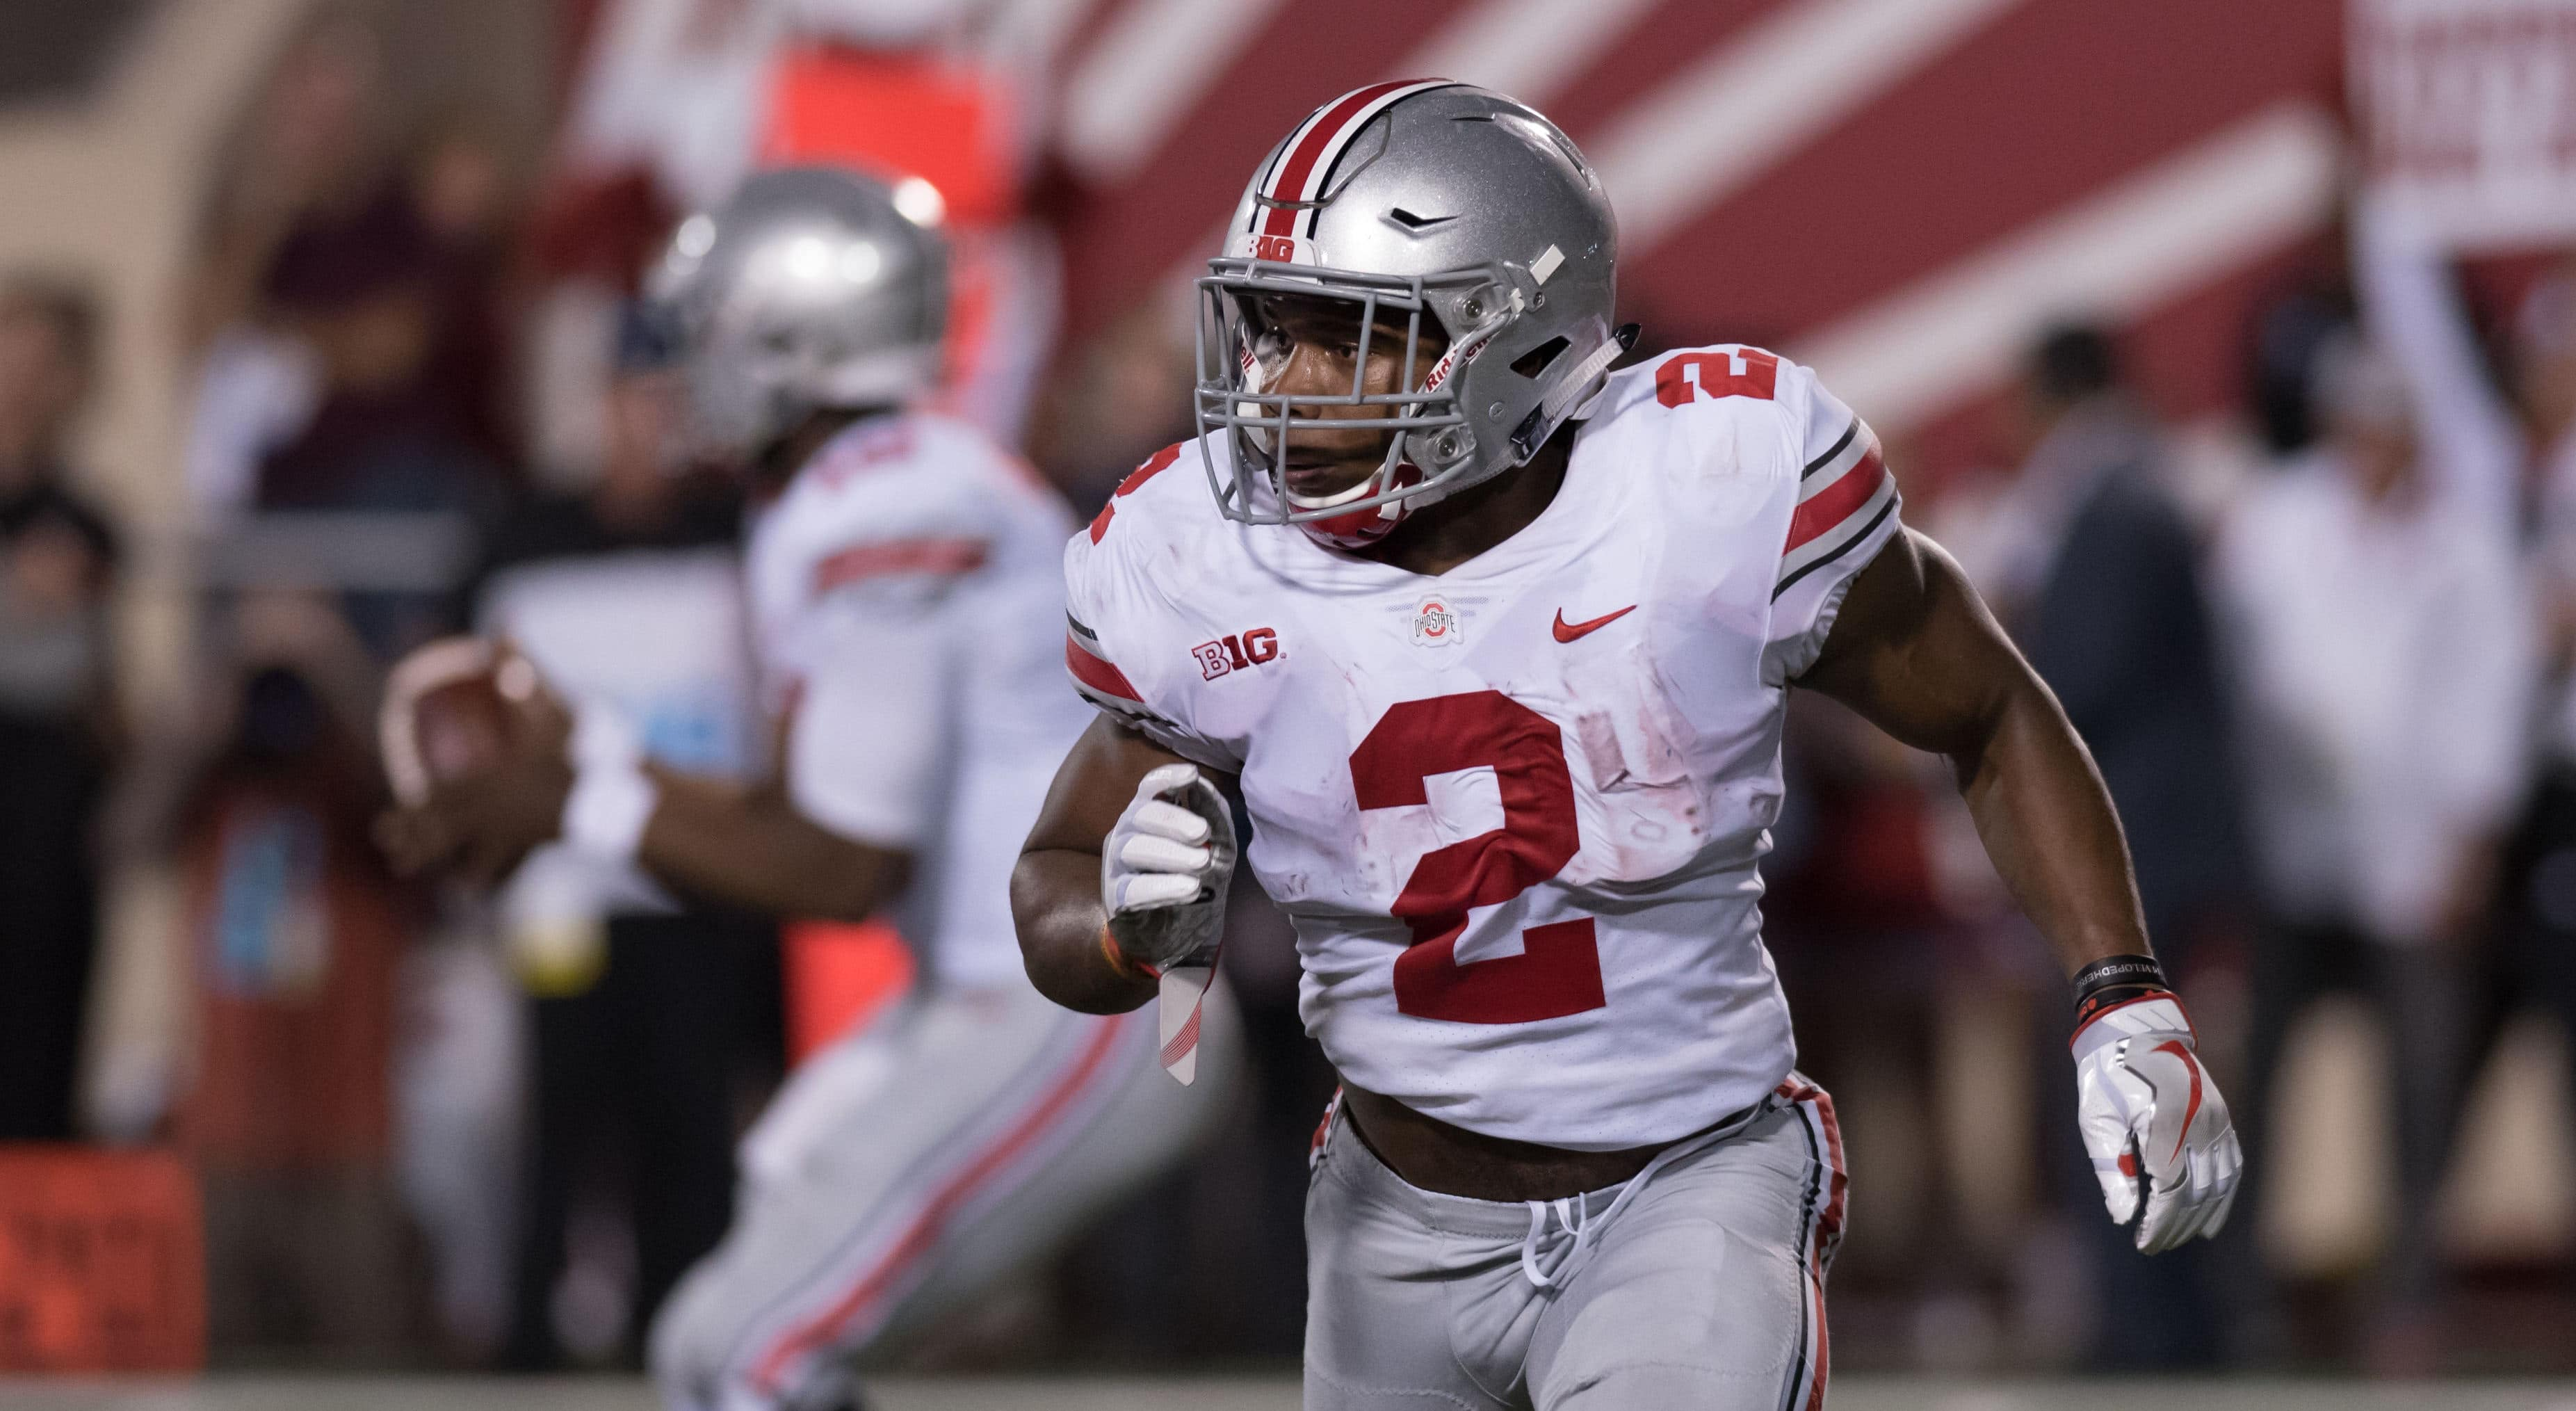 Oklahoma Sooners at Ohio State Buckeyes Start Time, Odds